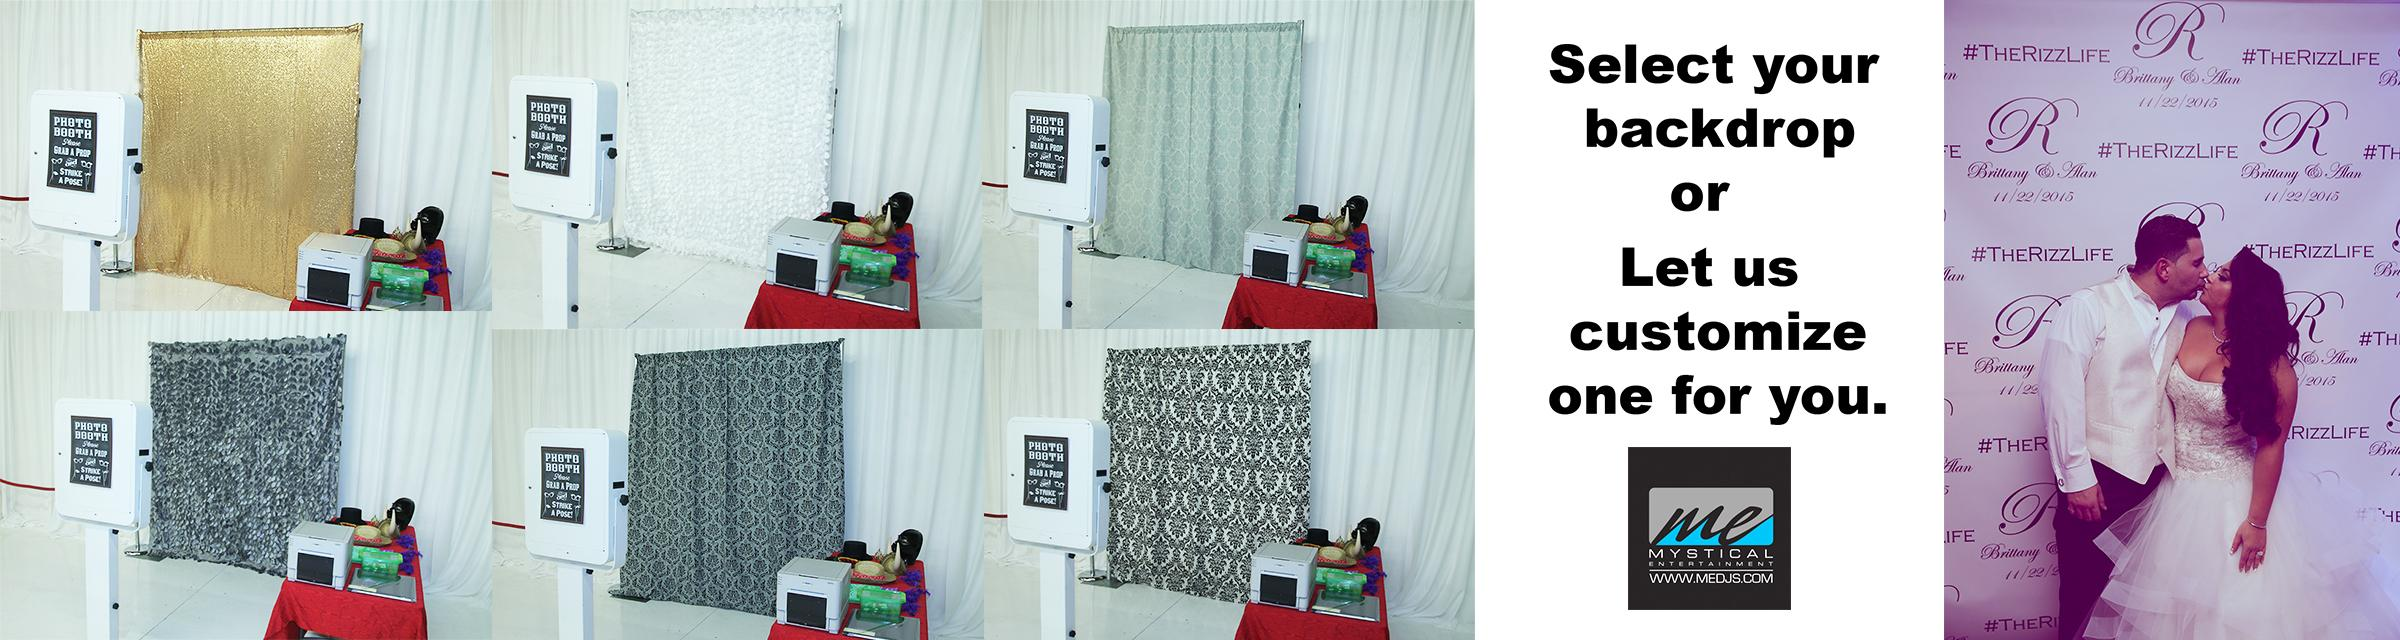 Backdrops ME photobooth rentals 3